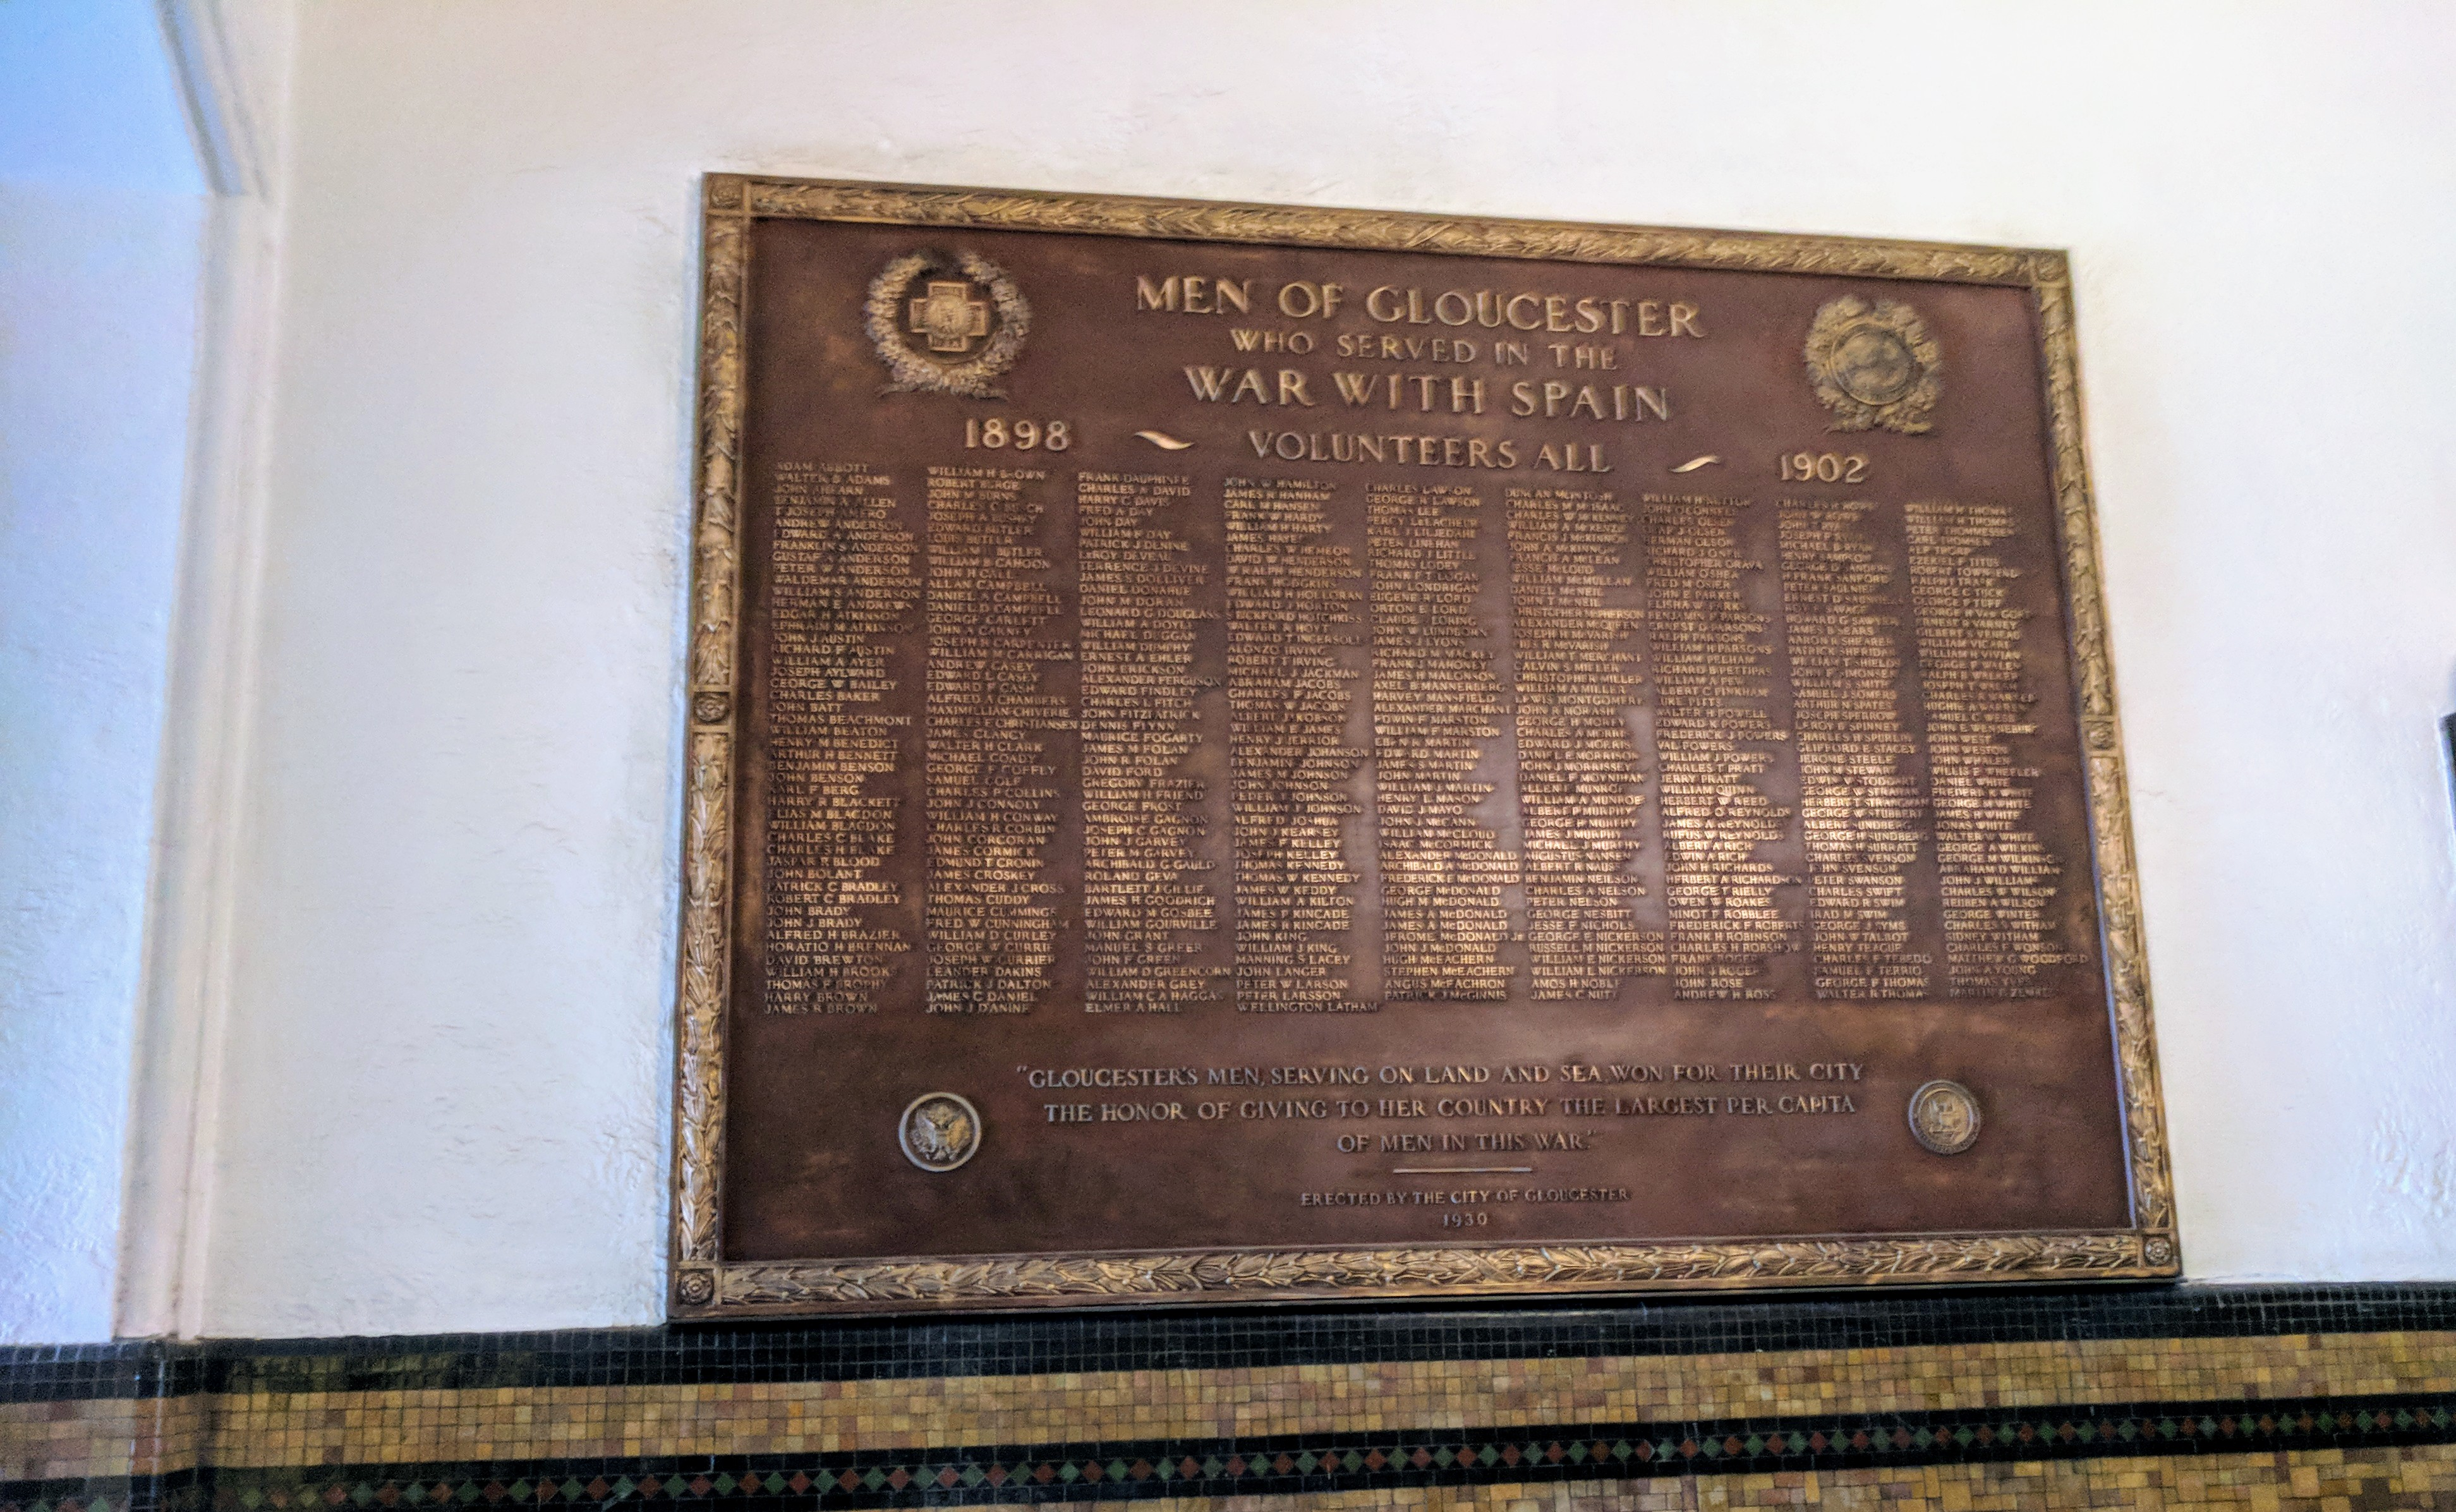 Honor Roll War with Spain City Hall cleaning needs to be redone  ©c ryan 20180221_095556.jpg